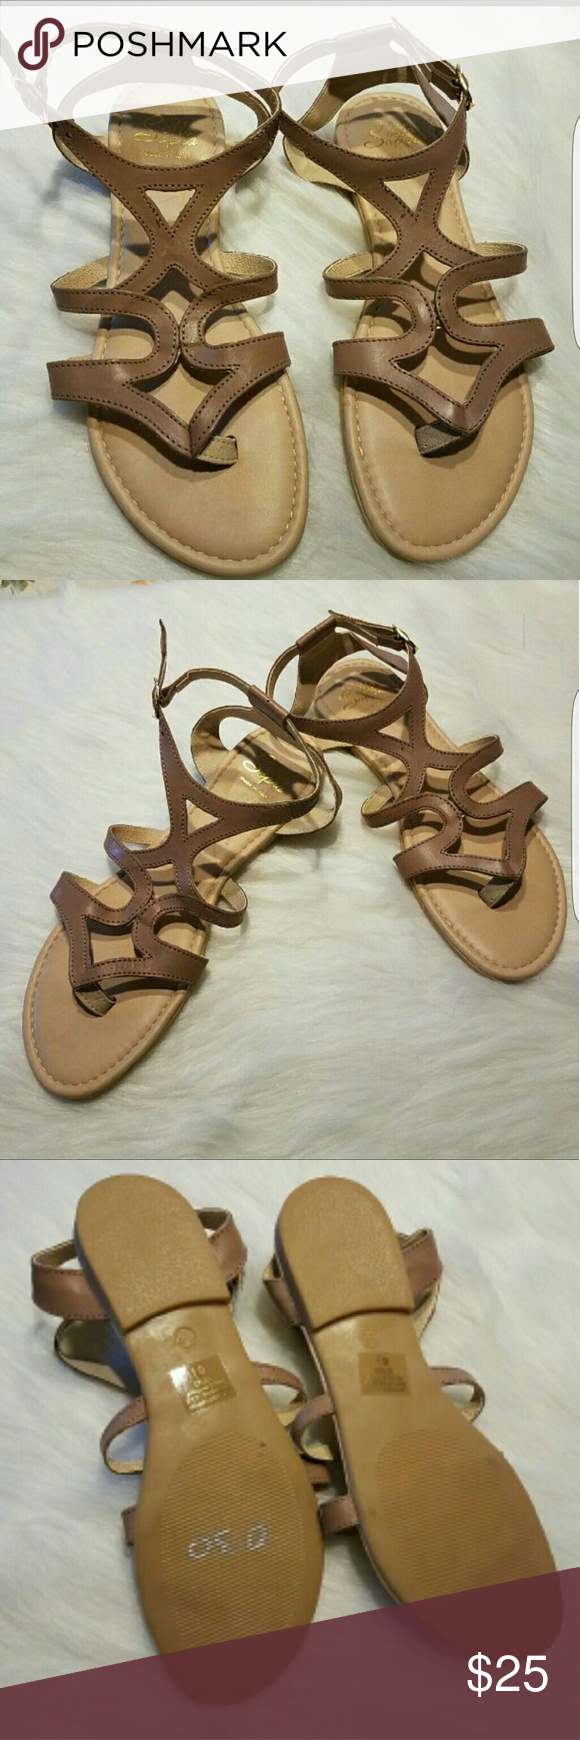 NWOT SOTTO SOPRA LEATHER SANDALS SZ 6.5 NEW SOTTO SOPRA SANDALS SIZE 6.5 BEIGE,TAN COLORS MADE IN ITALY UPPER LEATHER   ITEM SOLD AS IS sotto sopra Shoes Sandals